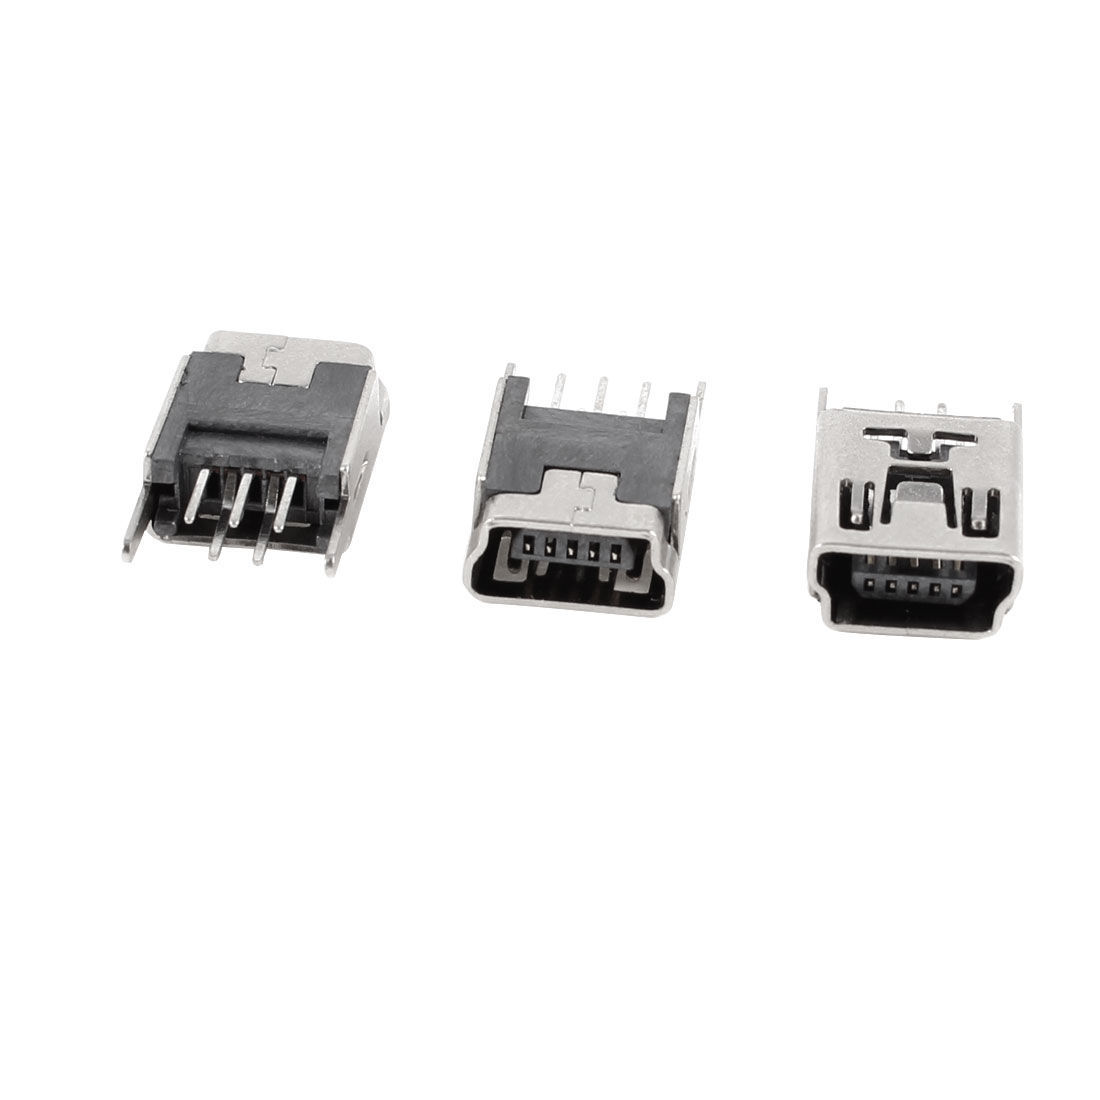 3 Pcs Mini USB Type B Female Socket 5-Pin 180 Degree DIP Jack Connector